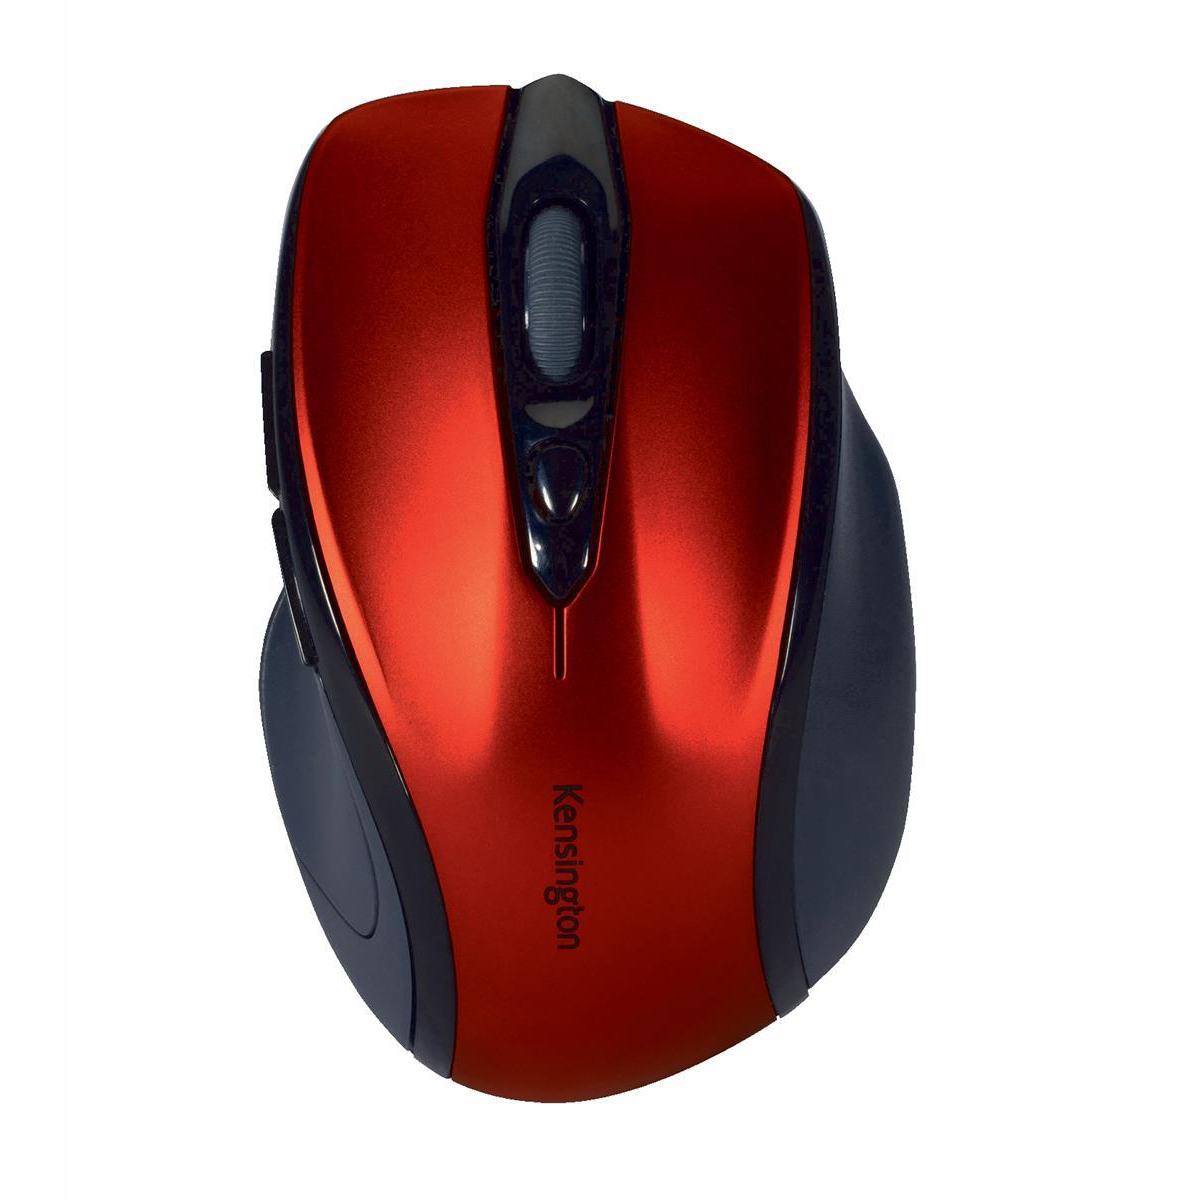 Wireless Kensington Pro Fit Mouse Mid-Size Optical Wireless Right Handed Red Ref K72422WW